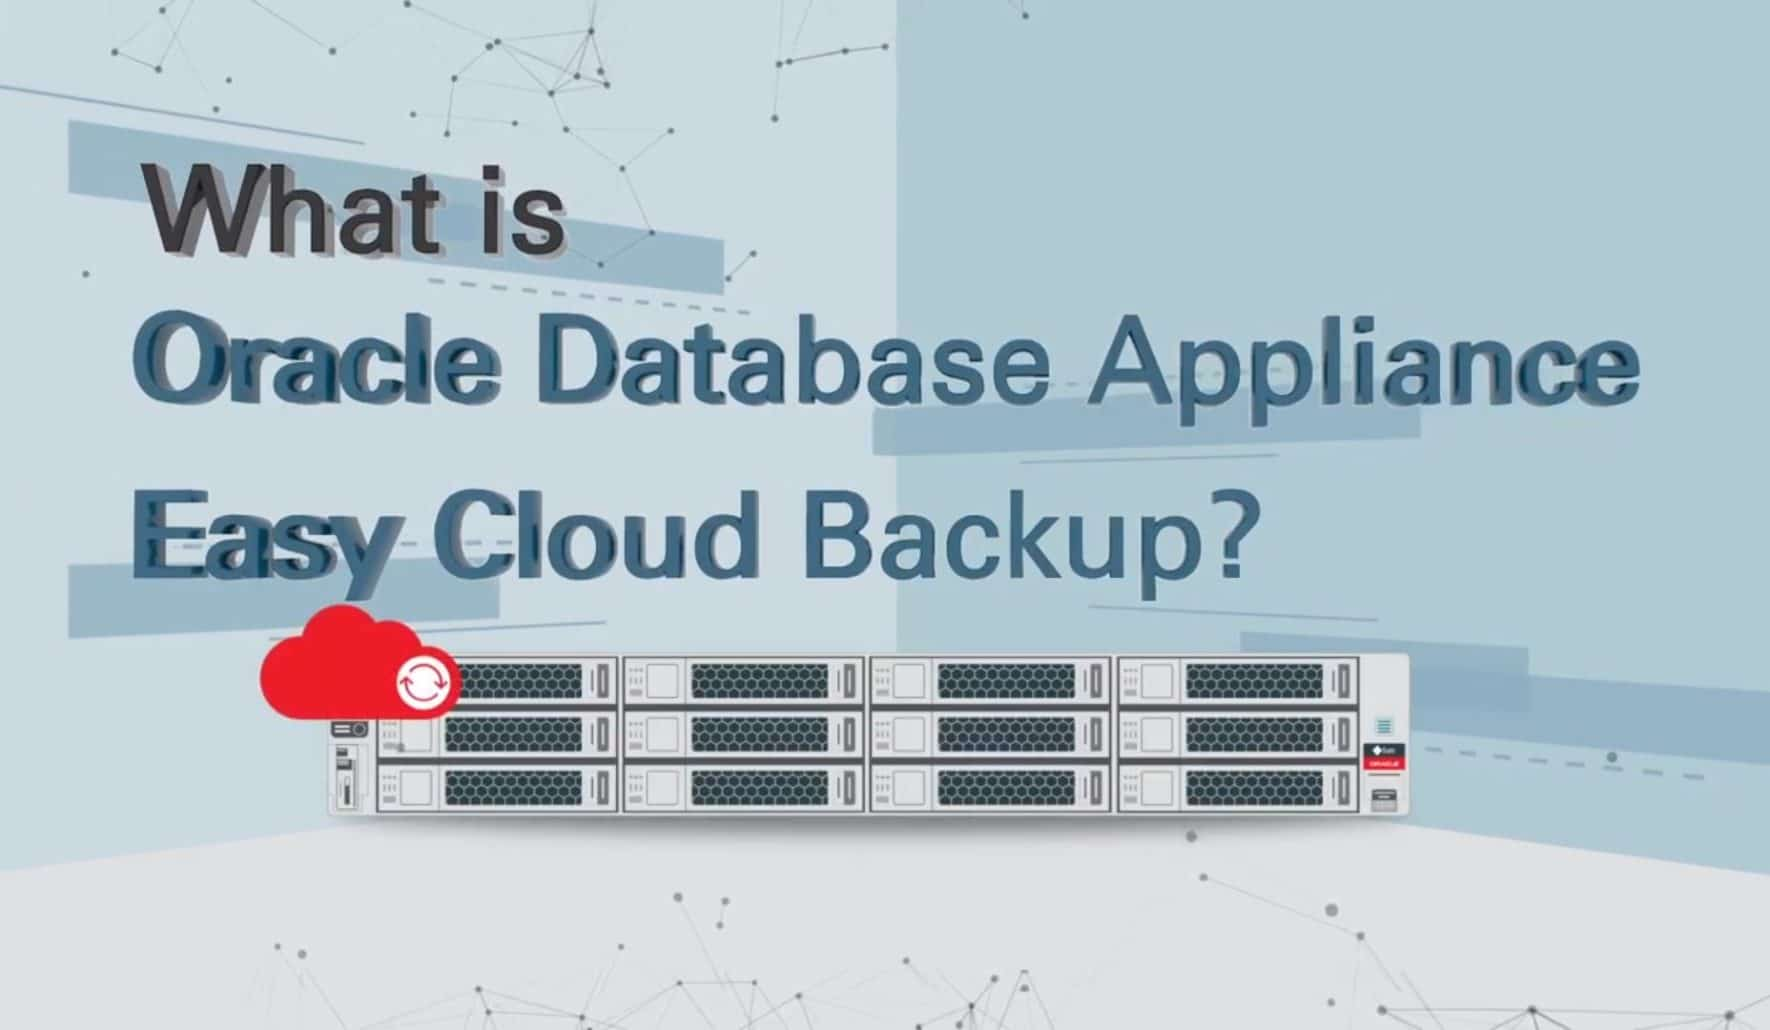 What Is Oracle Database Appliance Easy Cloud Backup?